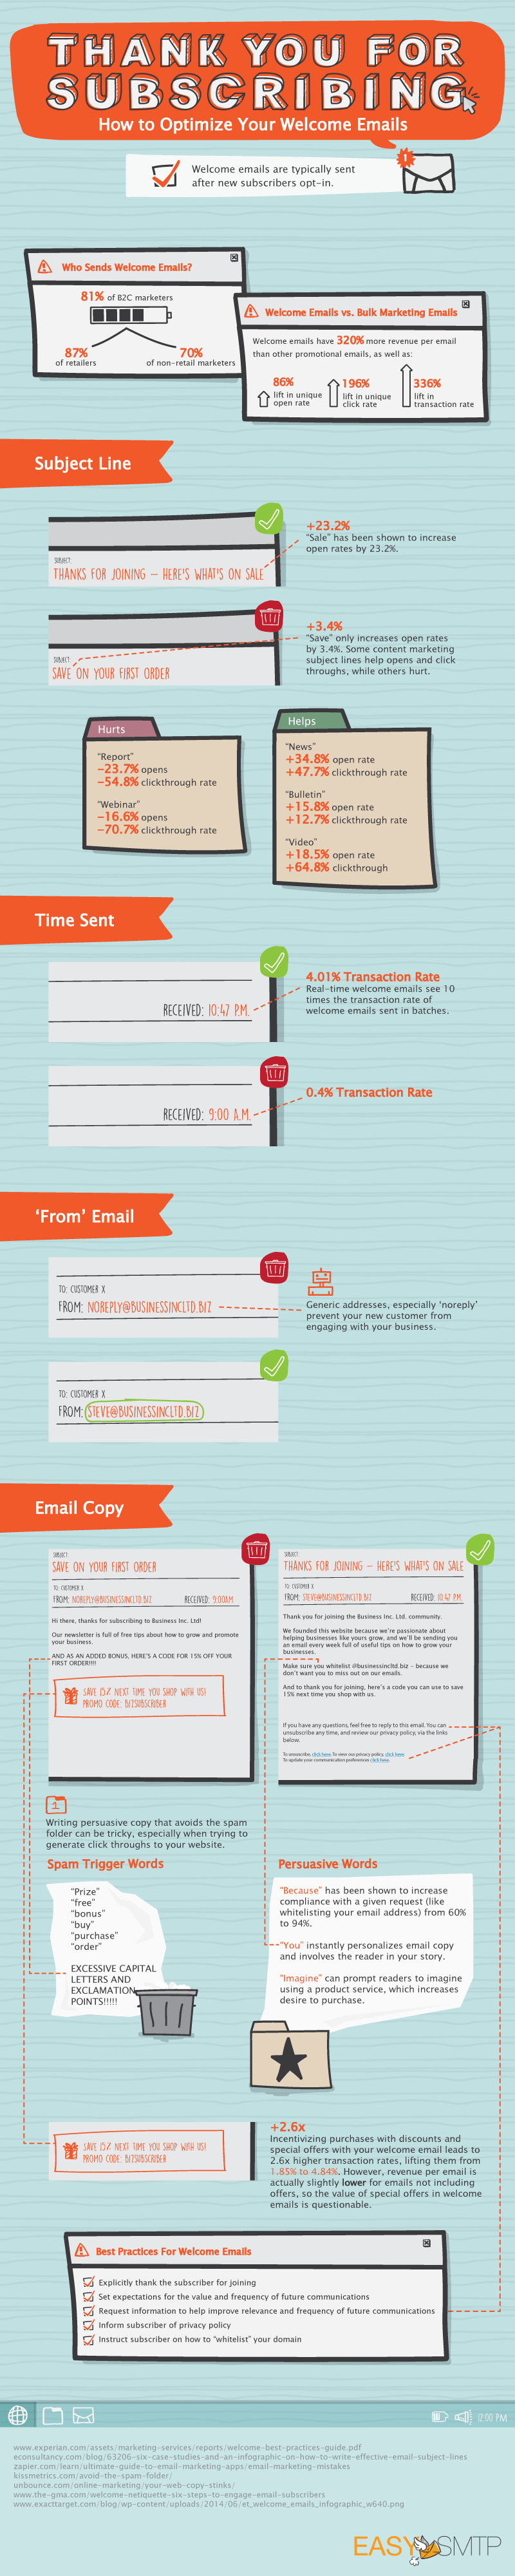 How to Engage Your Email Subscribers From the Moment They Sign Up Infographic